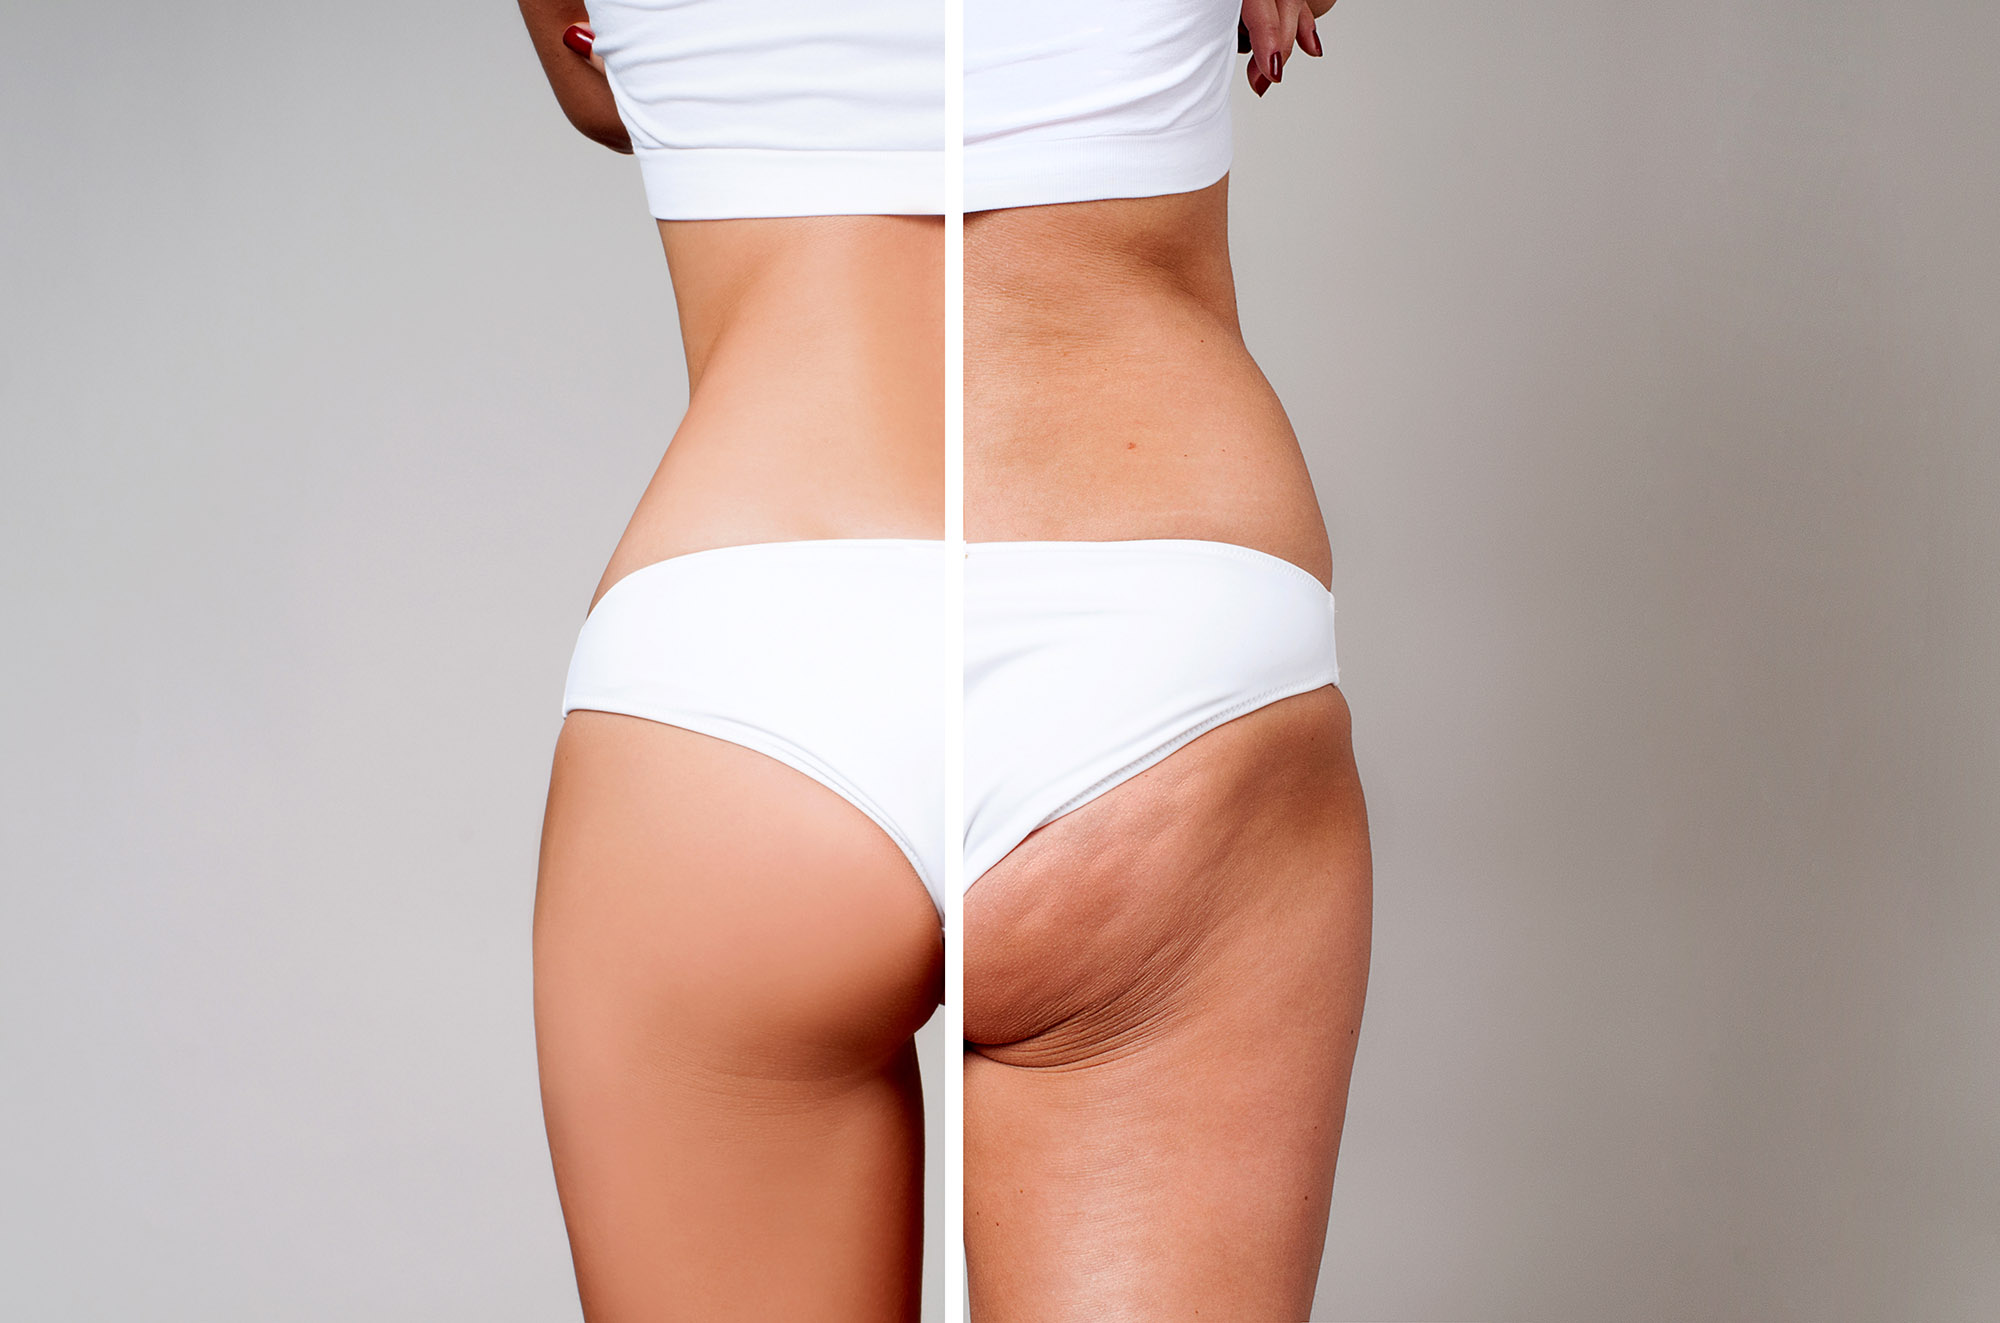 What to do About Cellulite |